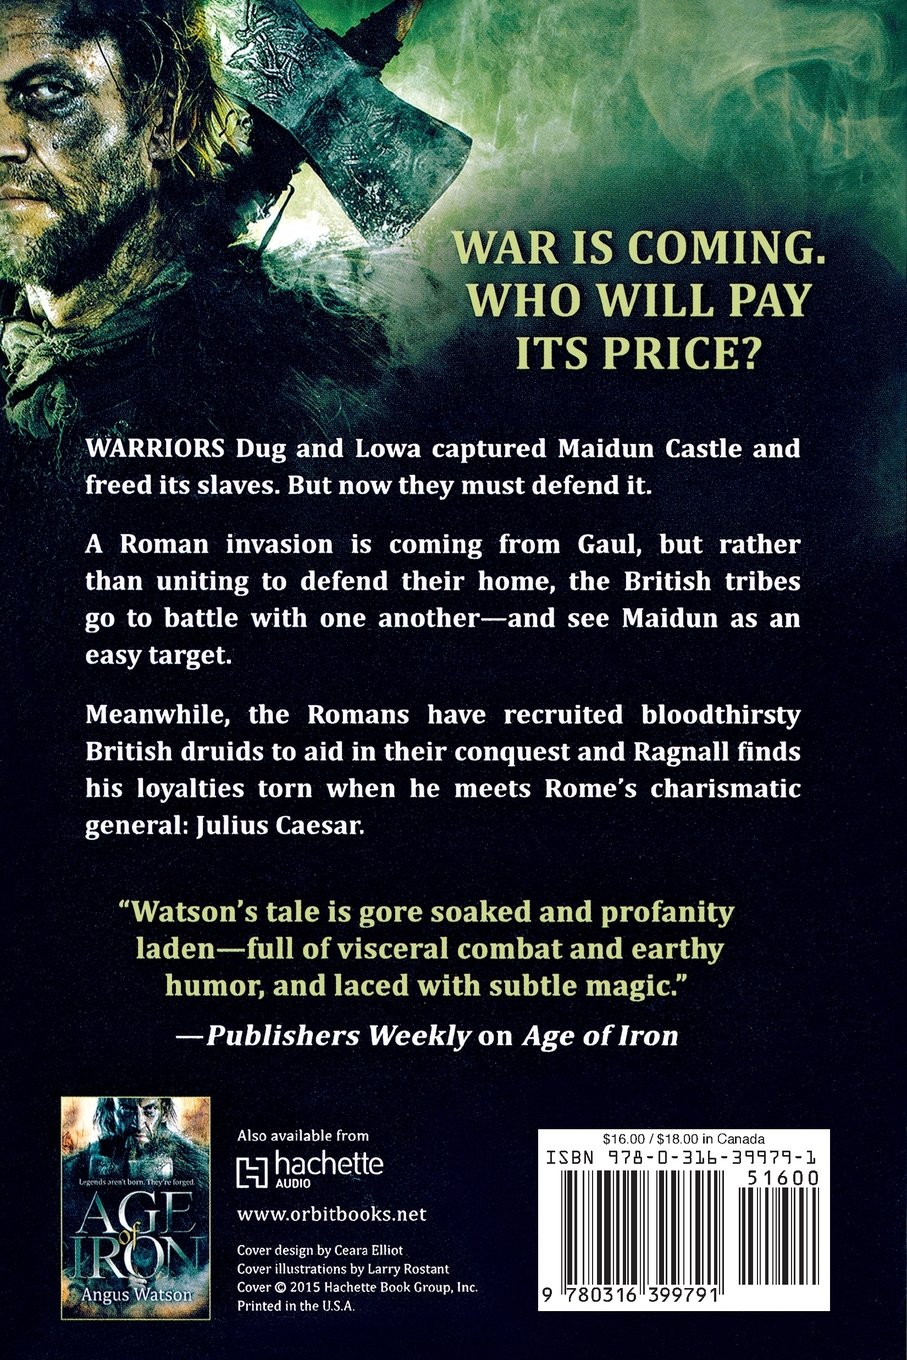 Clash of iron iron age angus watson 9780316399791 amazon clash of iron iron age angus watson 9780316399791 amazon books nvjuhfo Choice Image